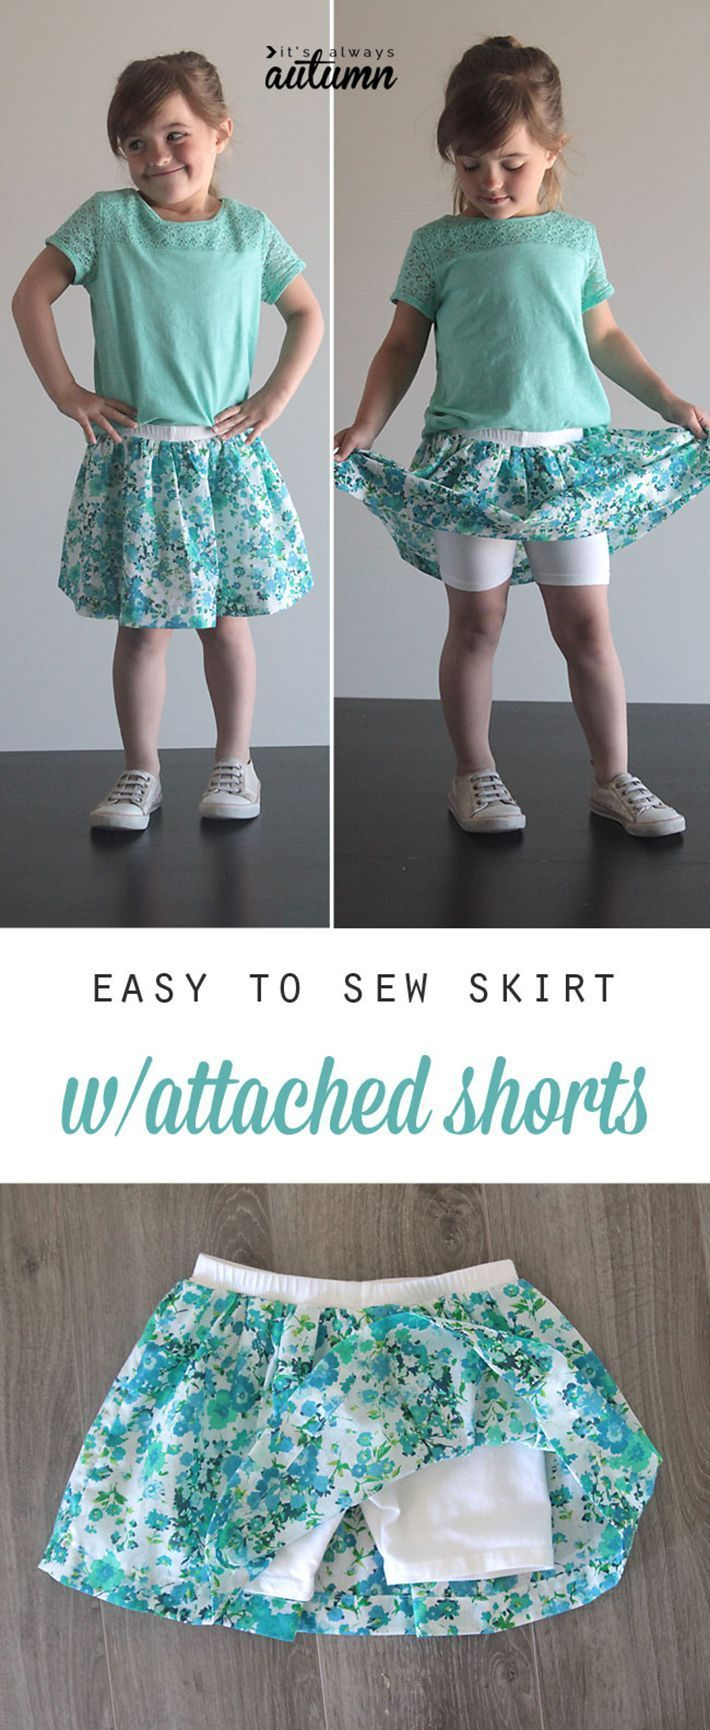 If you're not that good at sewing, this easy-to-sew 'skorts' will be perfect for you! Sewing fabric around an existing pair of shorts or tights certainly don't take a lot of skill.